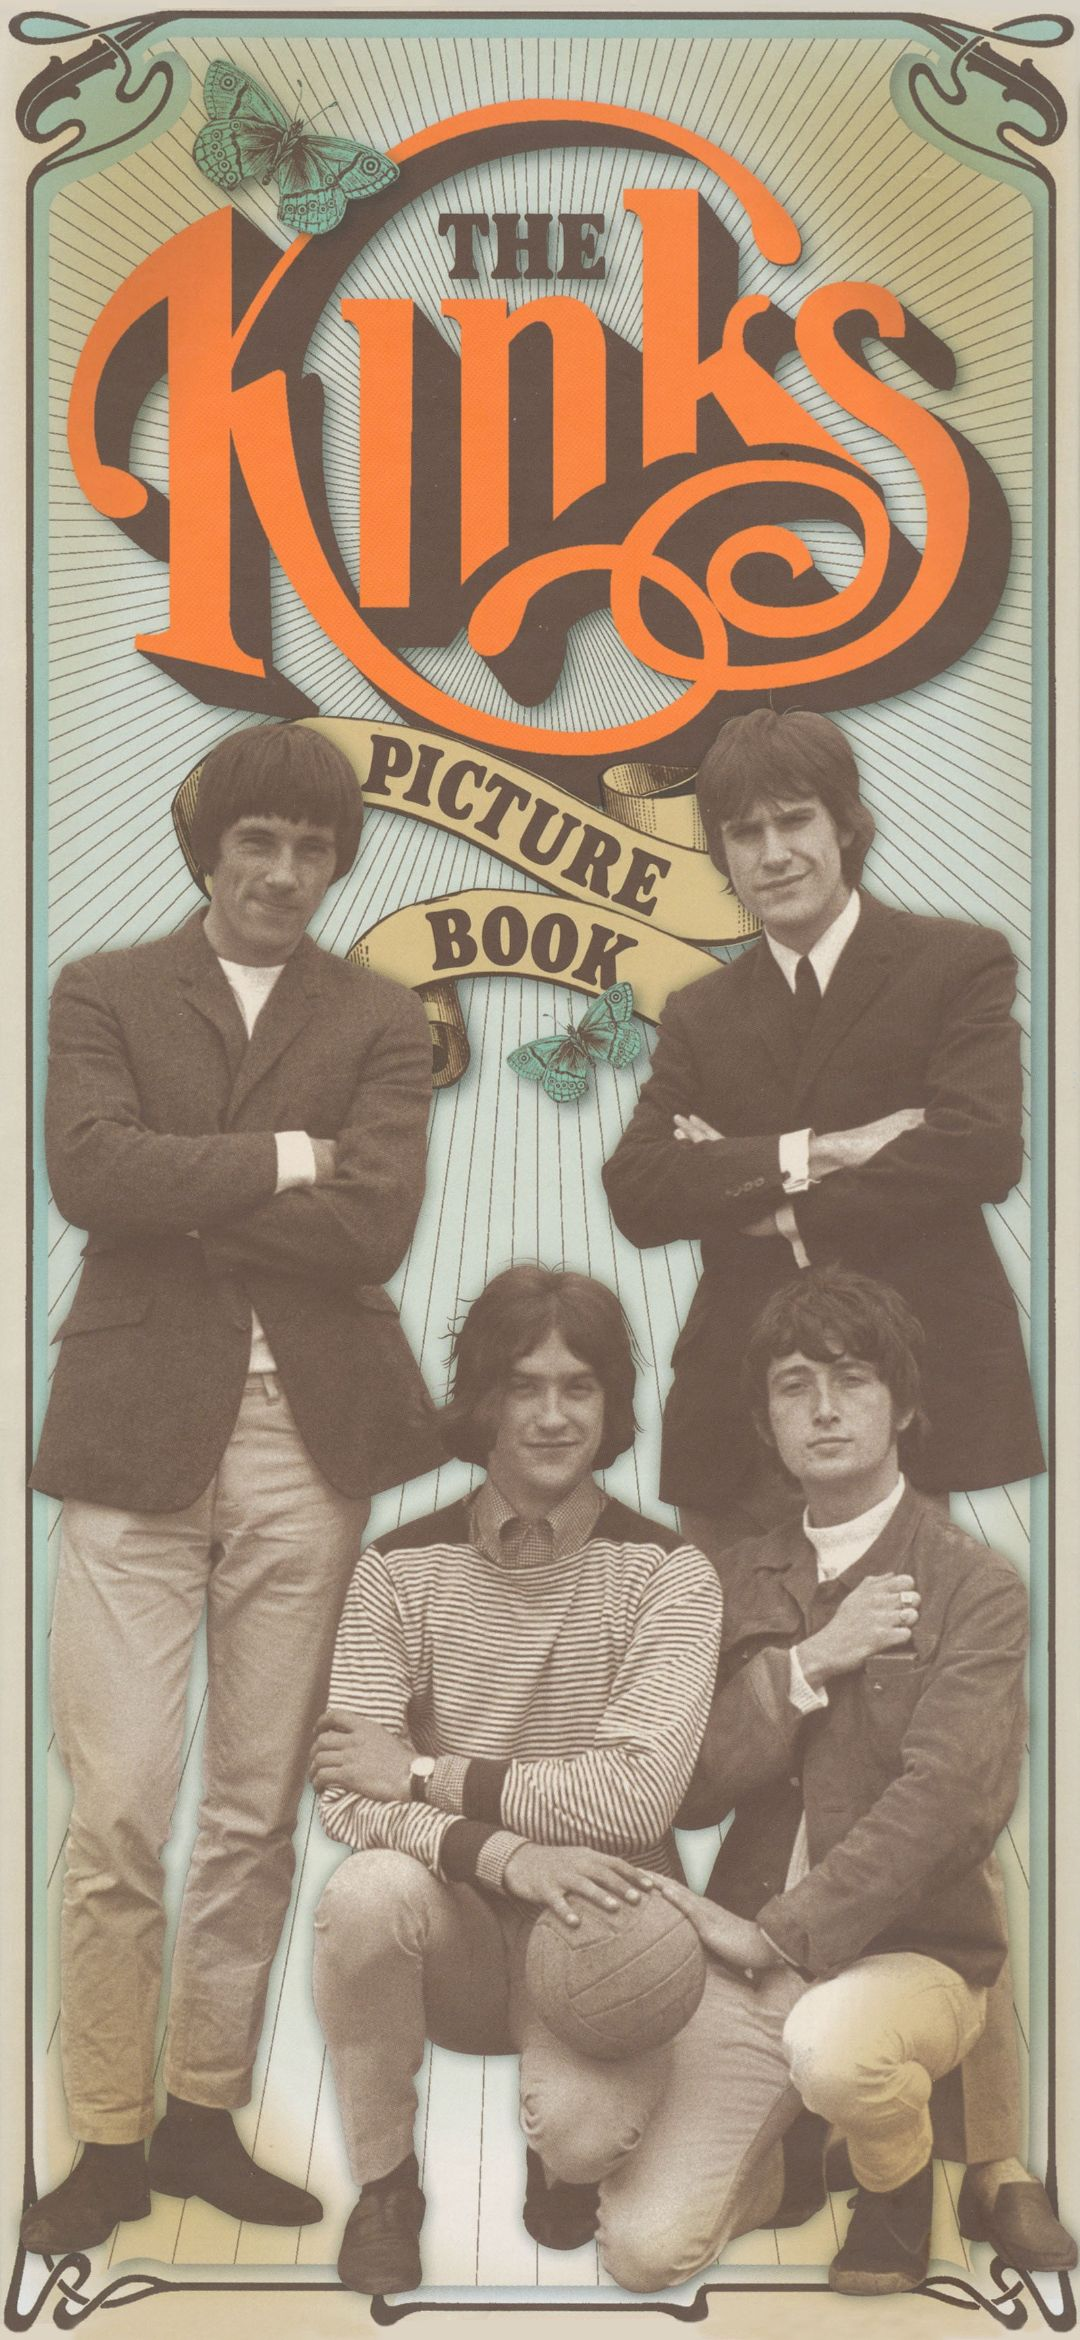 Picture Book [Box Set] - The Kinks | Songs, Reviews, Credits | AllMusic